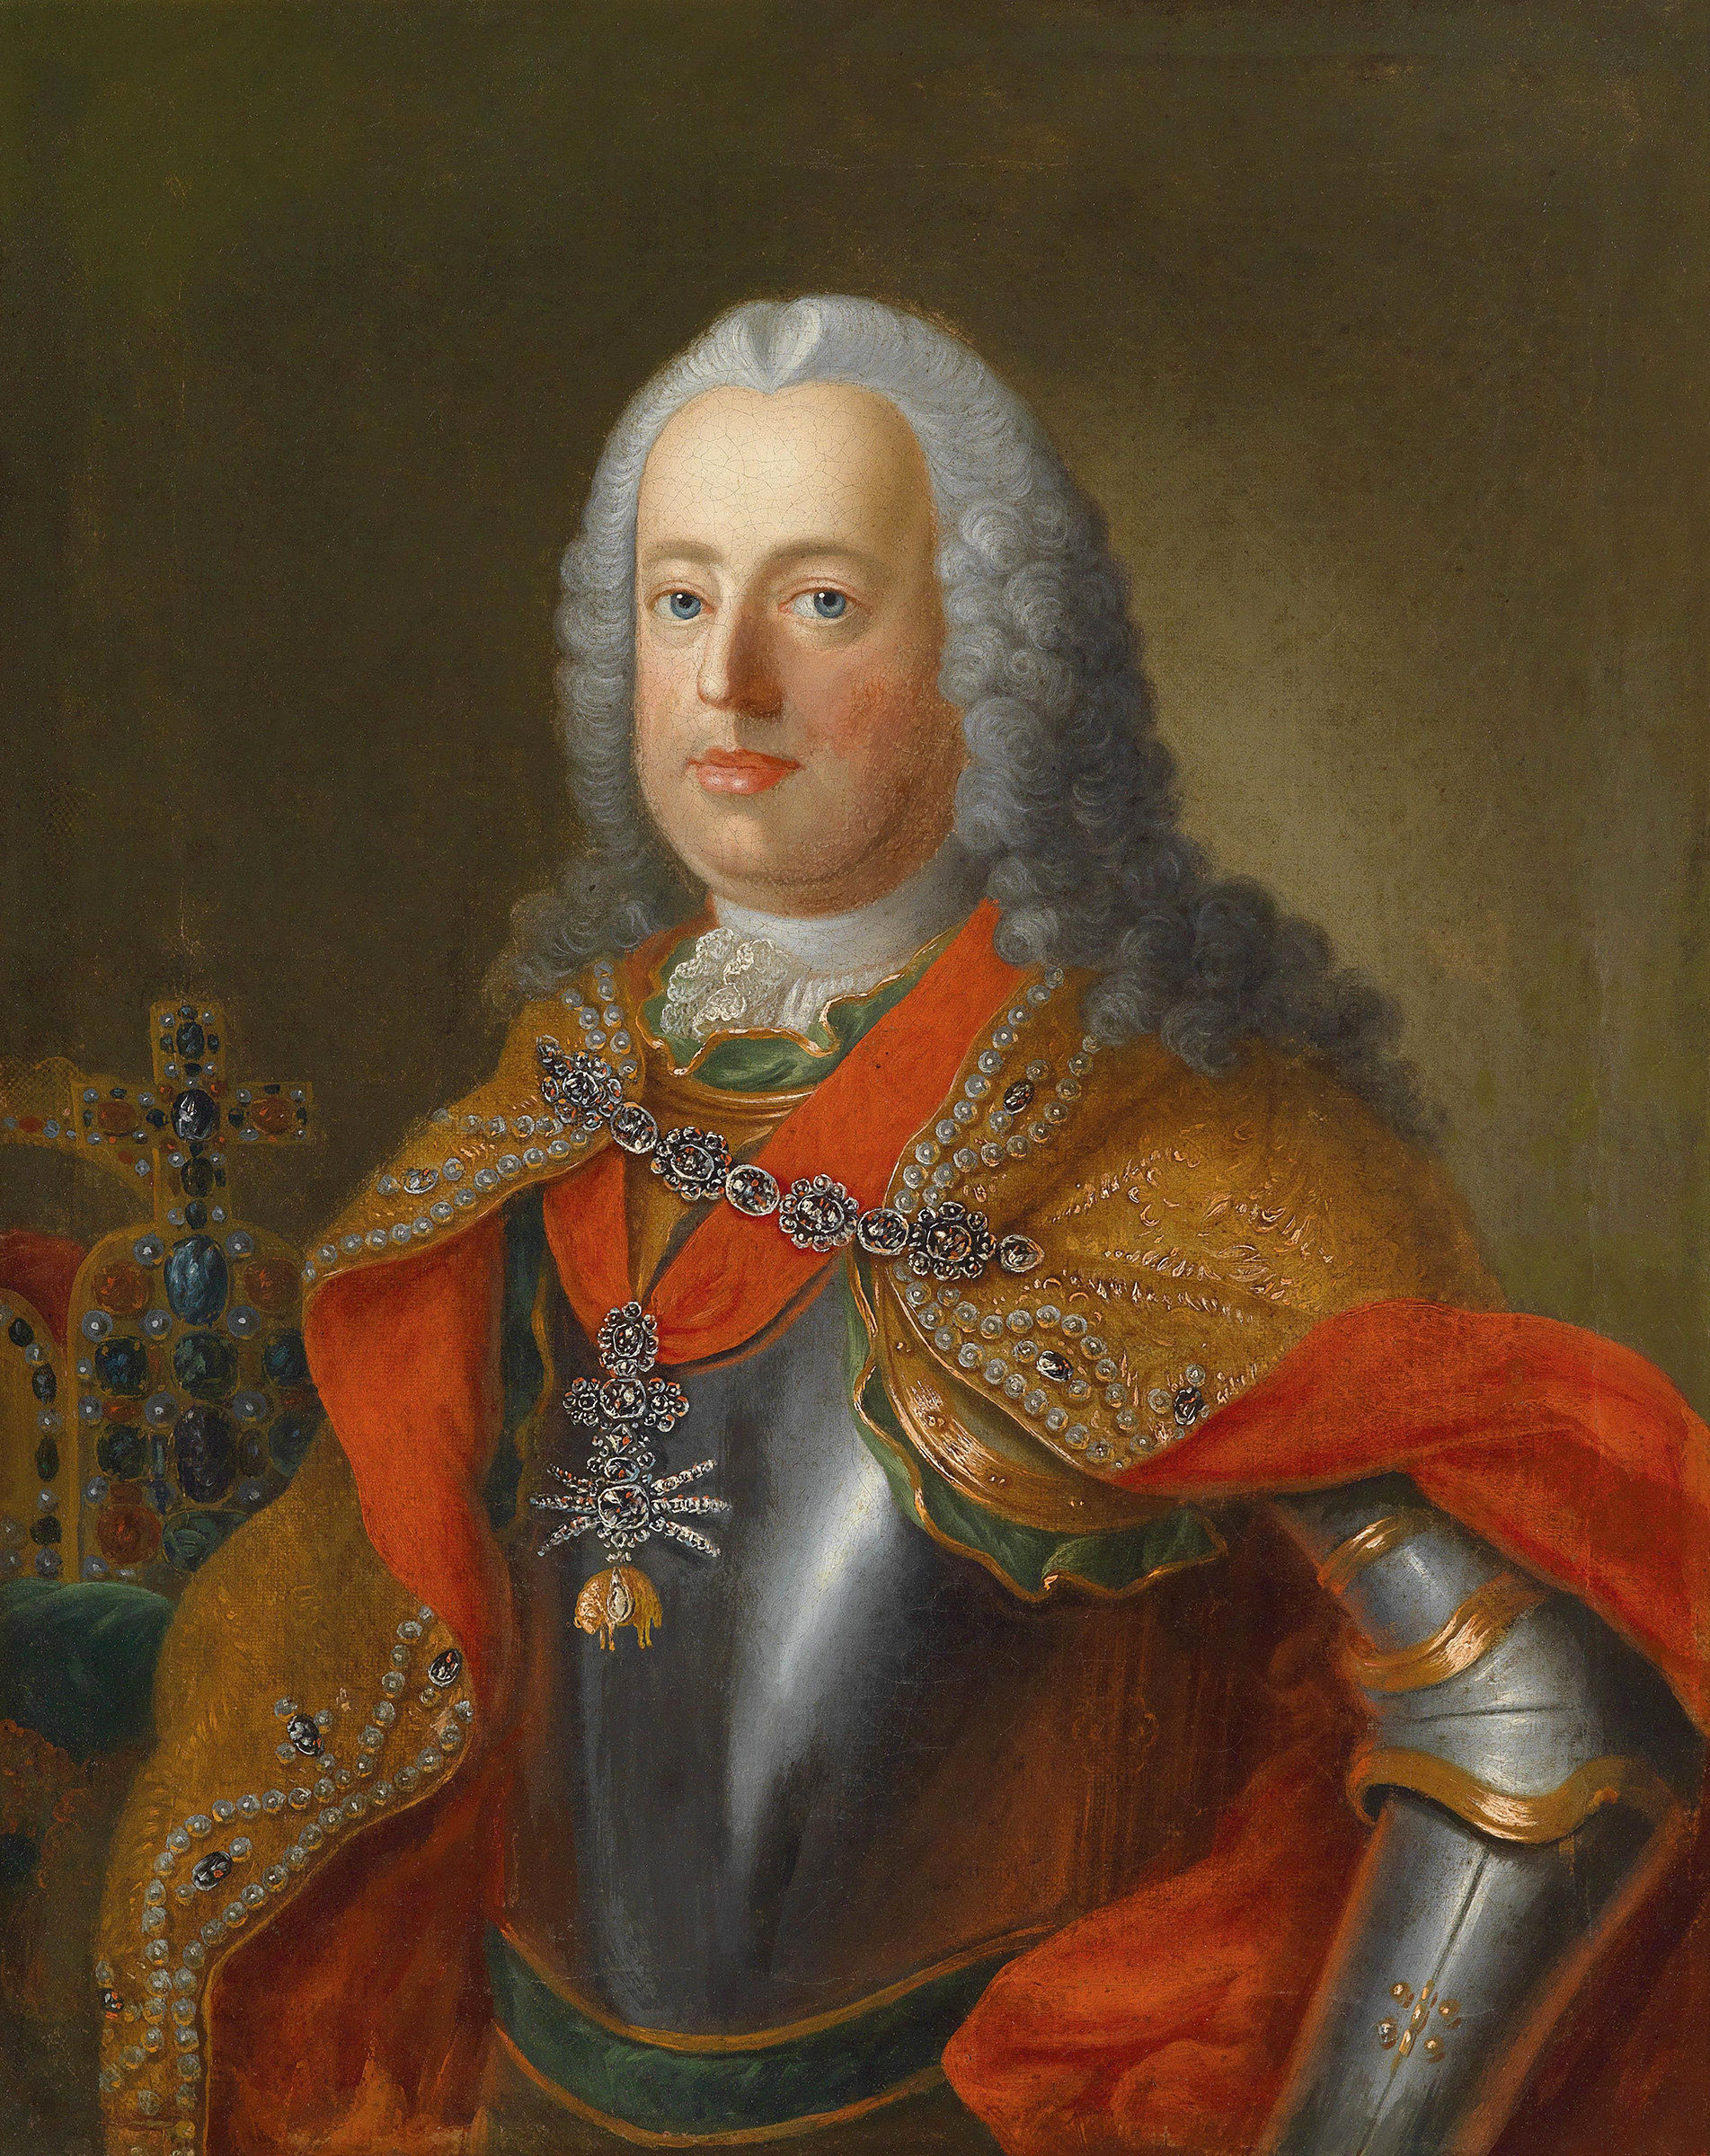 Portrait of Francis I (1708-1765), Holy Roman Emperor (King in Germany) from 1745 to 1765; Duke of Lorraine (François III) from 1729 to 1737; Grand Duke of Tuscany (1737-1765), Archduke of Austria (with Maria Theresa) from 1745 to 1765 | Portraits of Kings